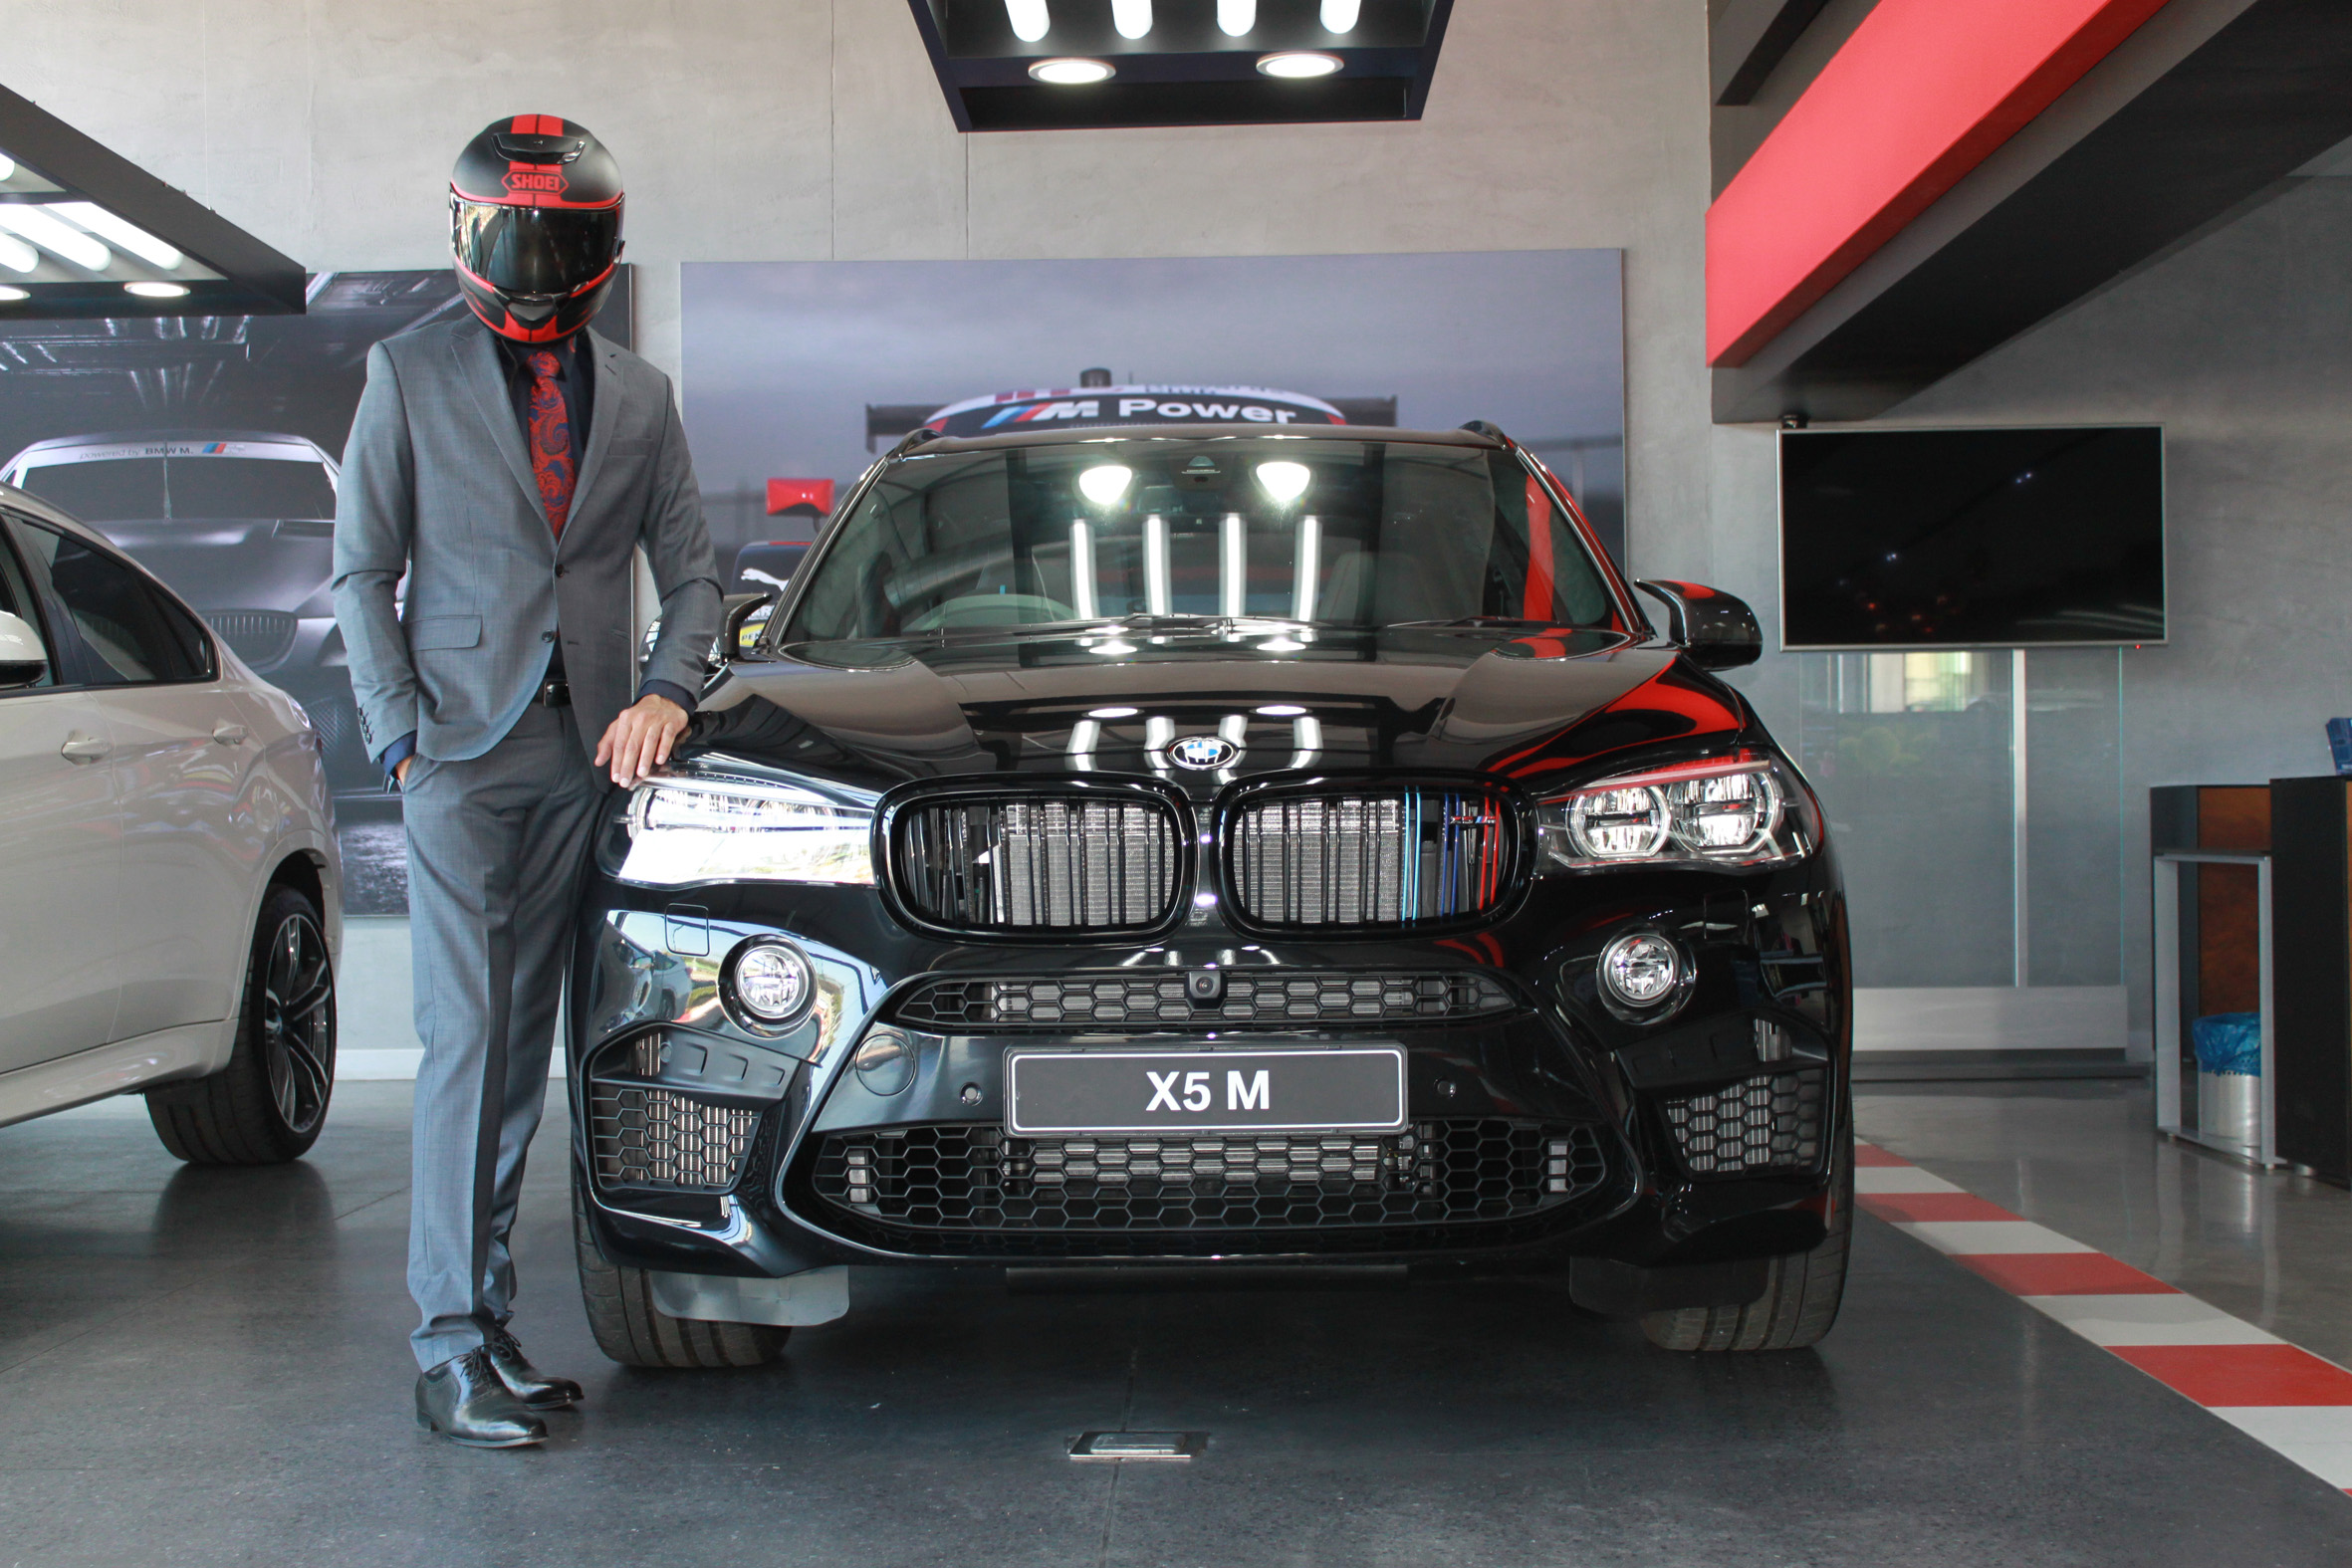 The Singh and the new BMW X5 M, on their way to seeing what the car do